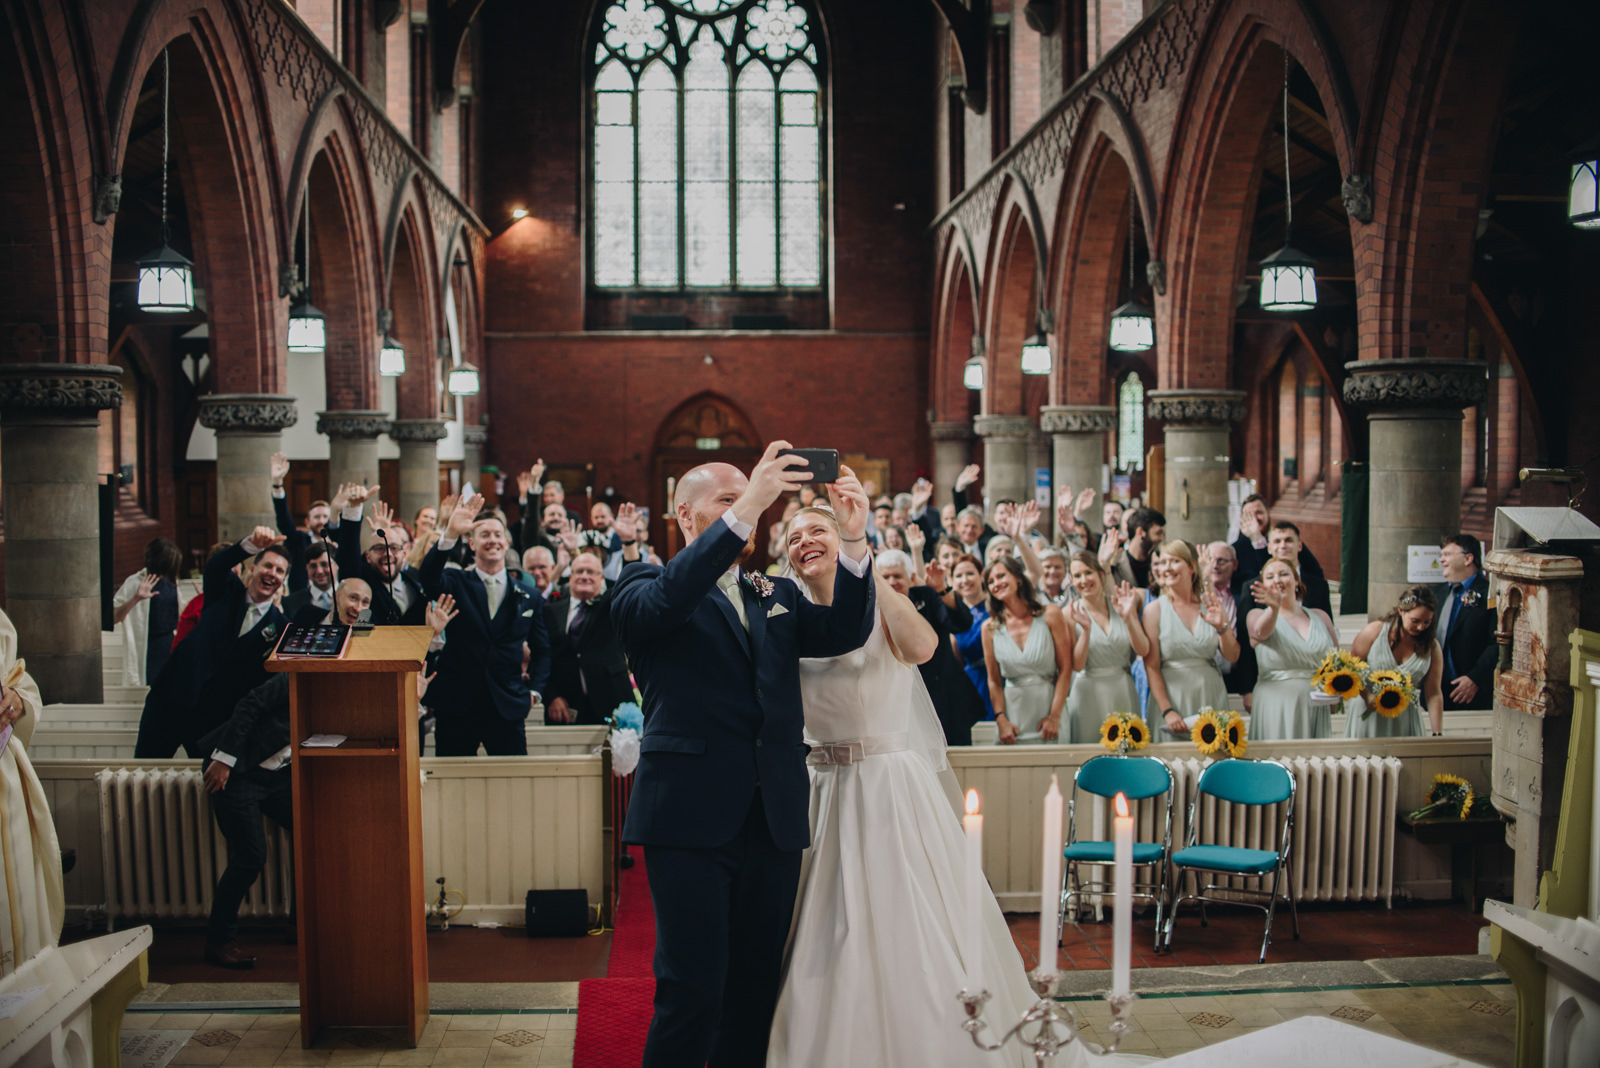 Alternative Manchester North West Wedding Photography, The Wellbeing Farm Wedding Photography | Rustic Pokemon Comic Book Wedding| The Pin-Up Bride | Church Selfie